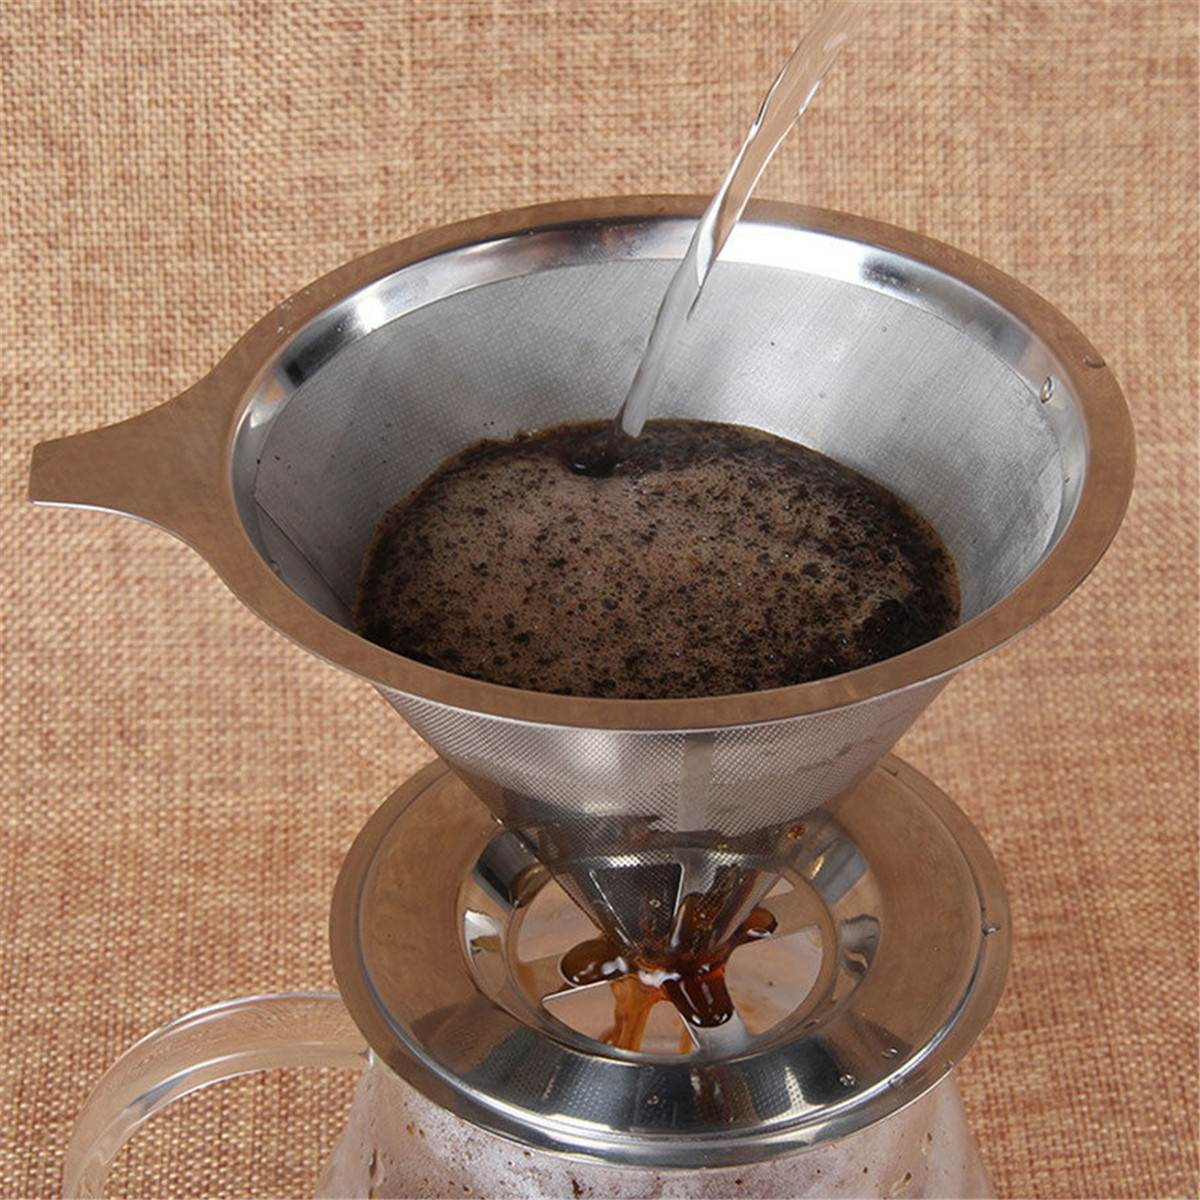 Cone Stainless Steel Coffee Mesh Filter Dripper Double Layer Paperless Home Kitchen Coffee Shop Coffee Making